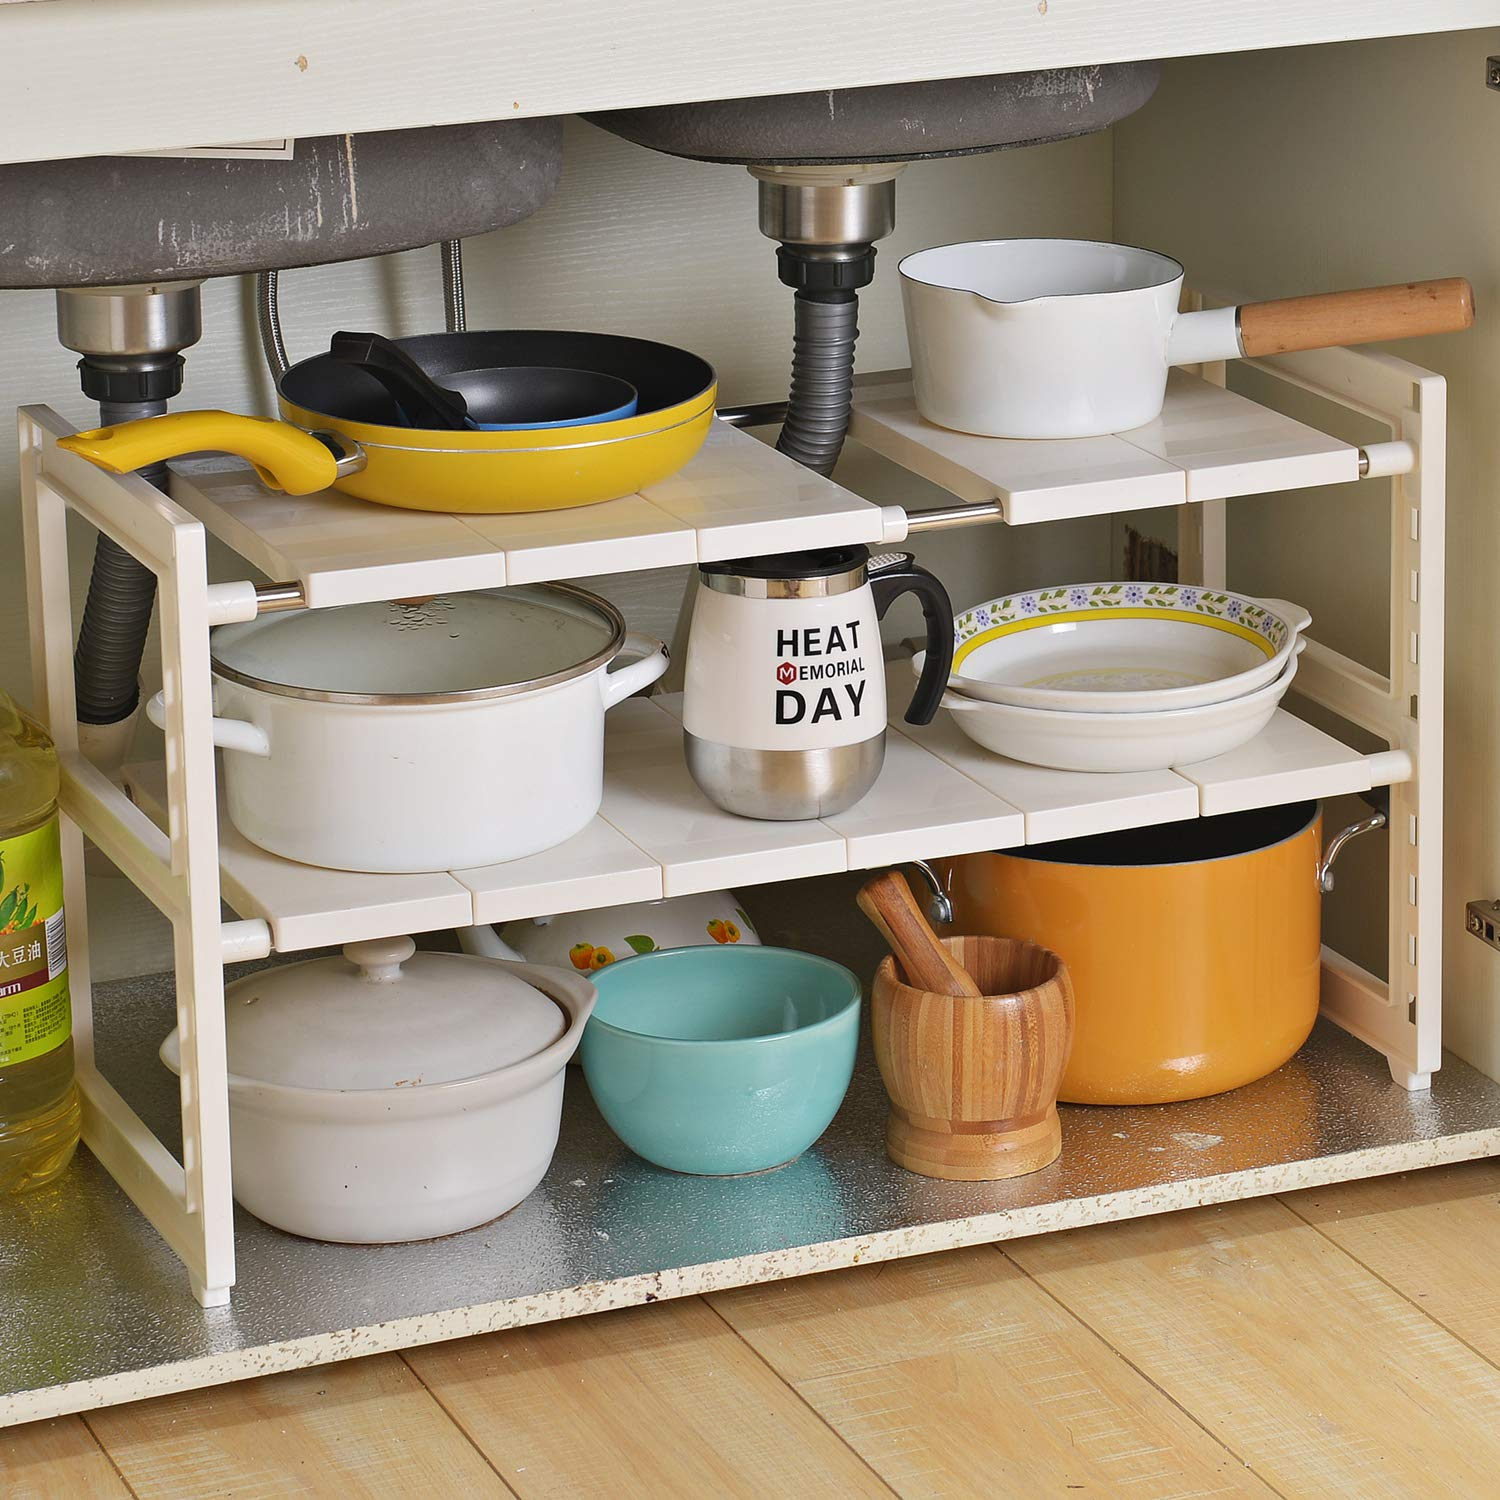 OBOR Expandable Under Sink Organizer - 2 Tier Multifunctional Storage Rack  with Removable Shelves and Steel Pipes for Kitchen, Bathroom and Garden …